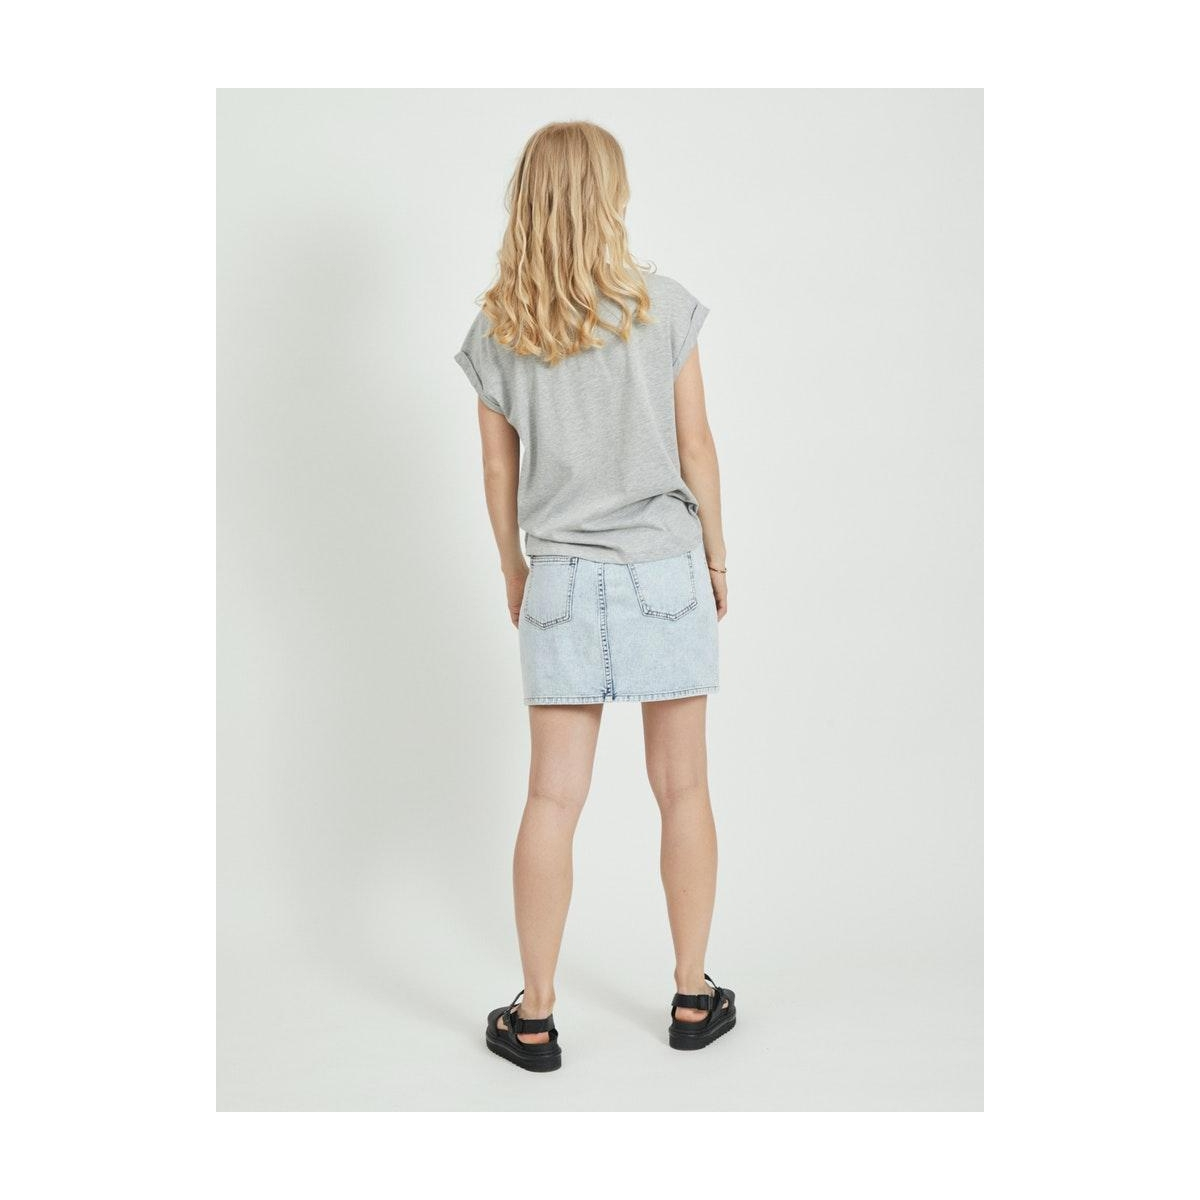 vidulta t-shirt 14061721 vila t-shirt light grey melange